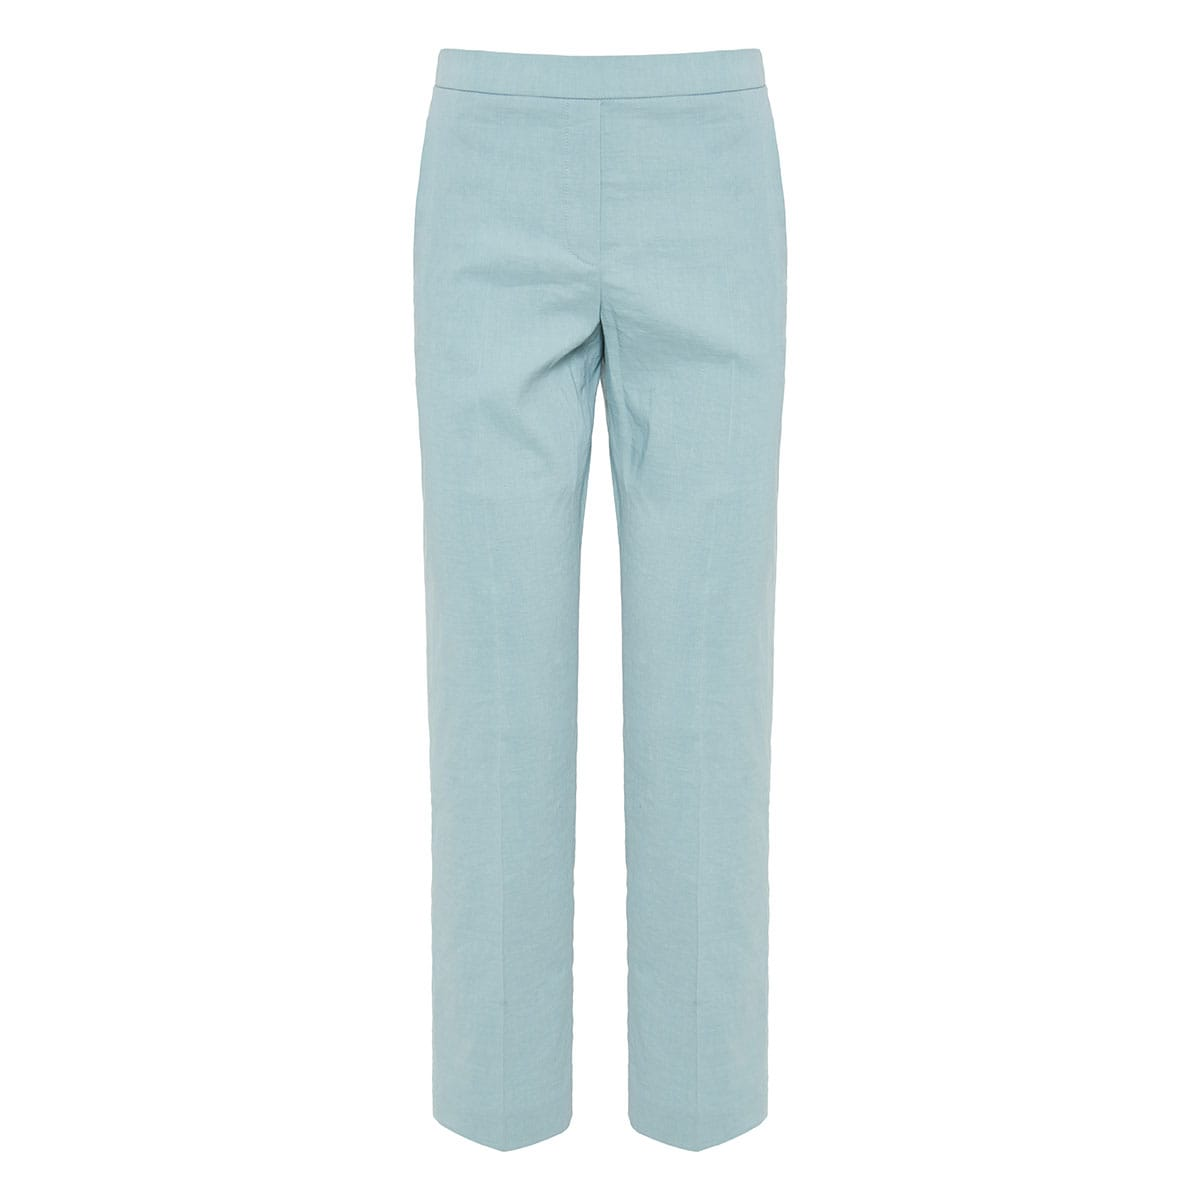 Treeca cropped linen trousers